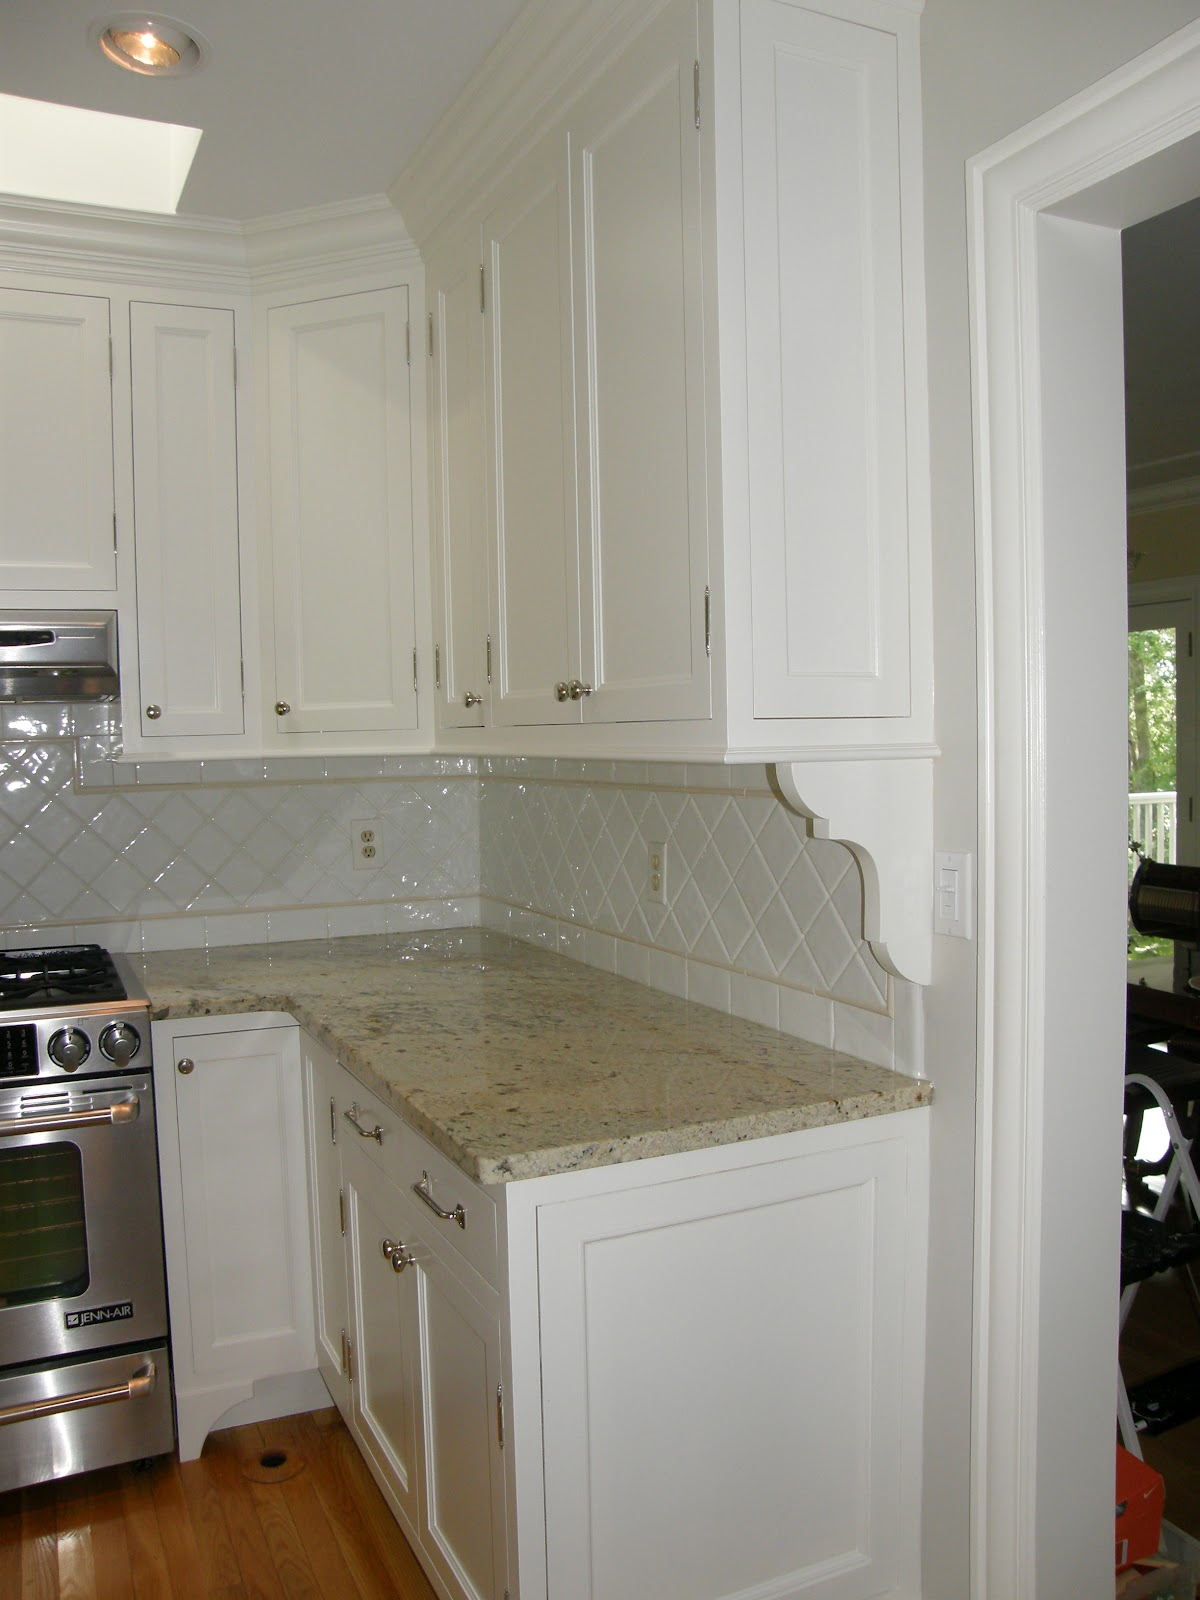 Enviornmentally Friendly Kitchen Reno: Before and After